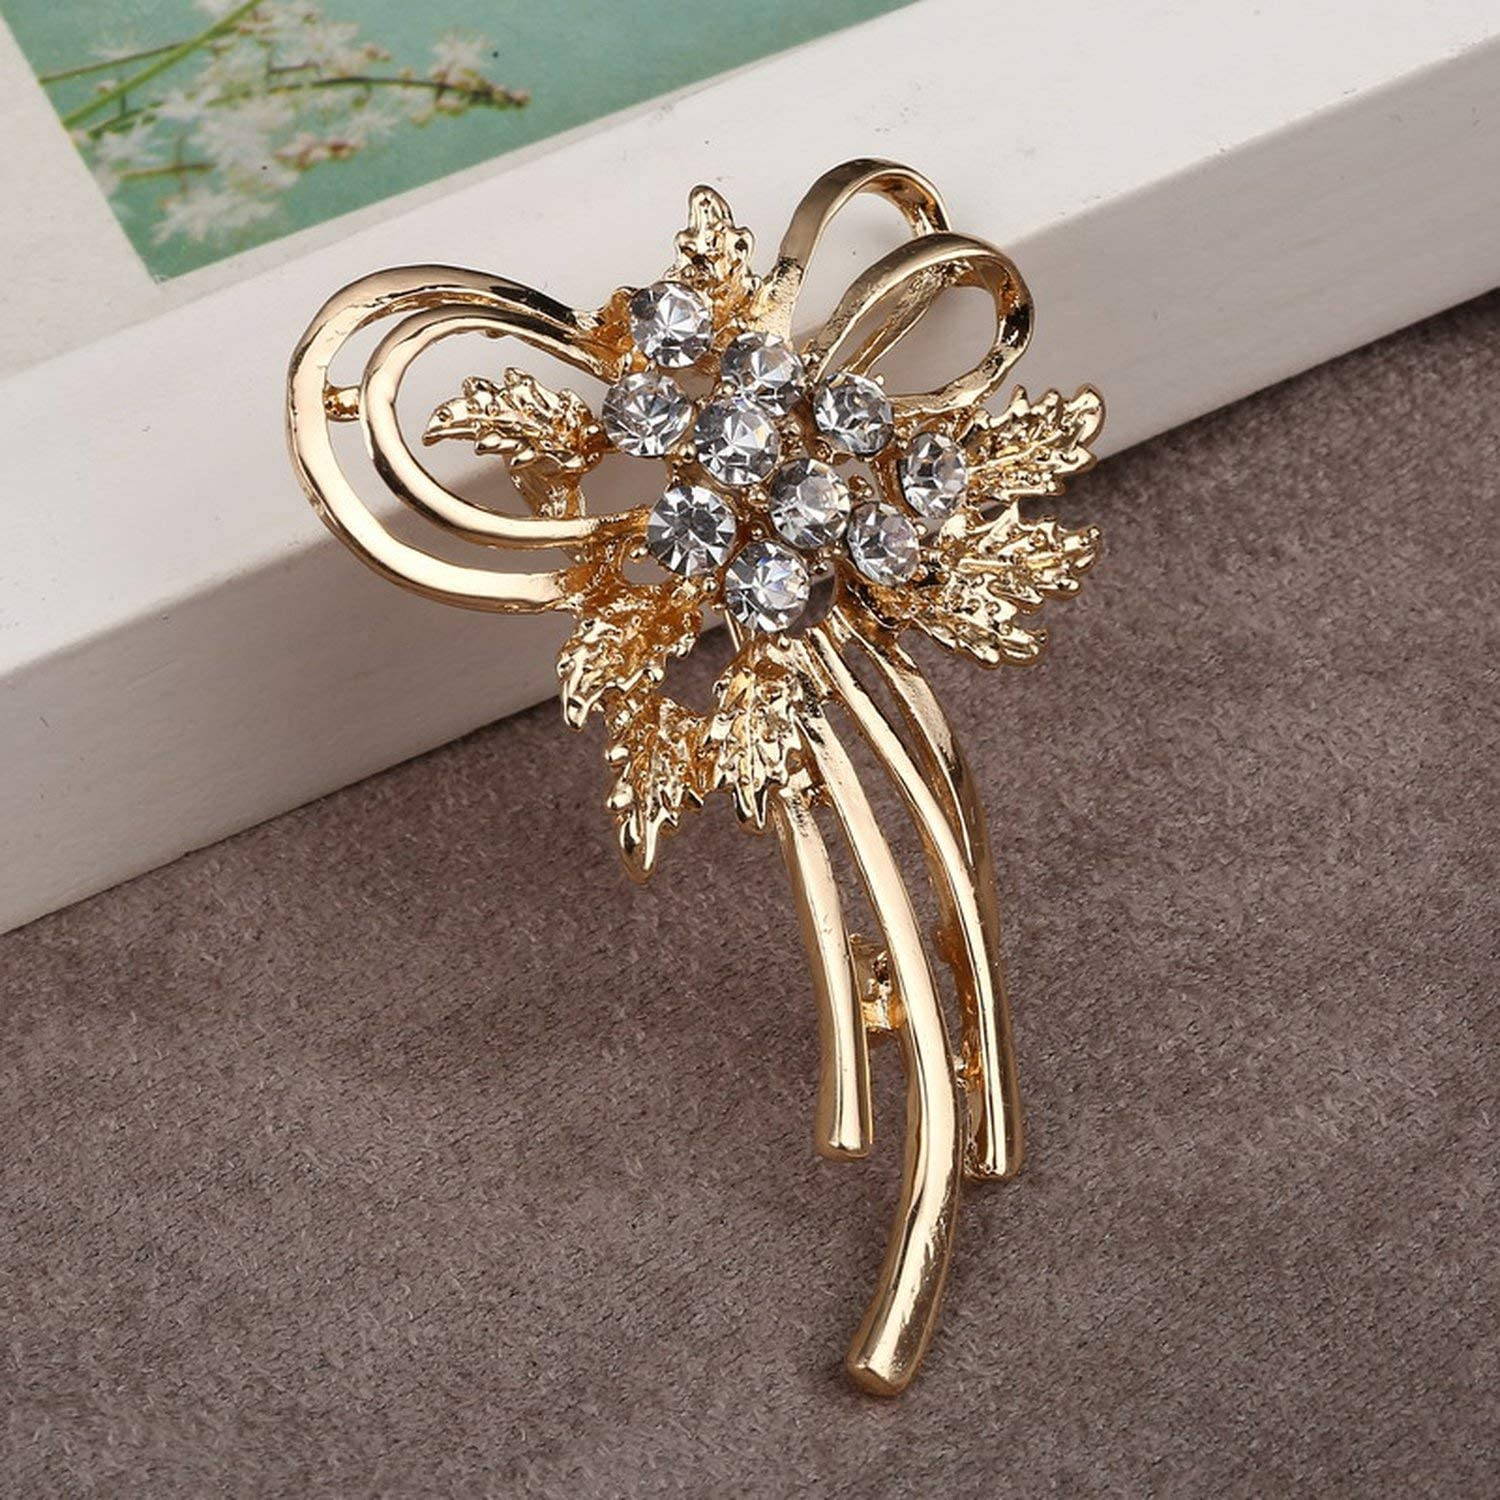 myeuphoria Brooch Pins-Simulated Pearl Golden Letter K Zinc Alloy Brooch Pins